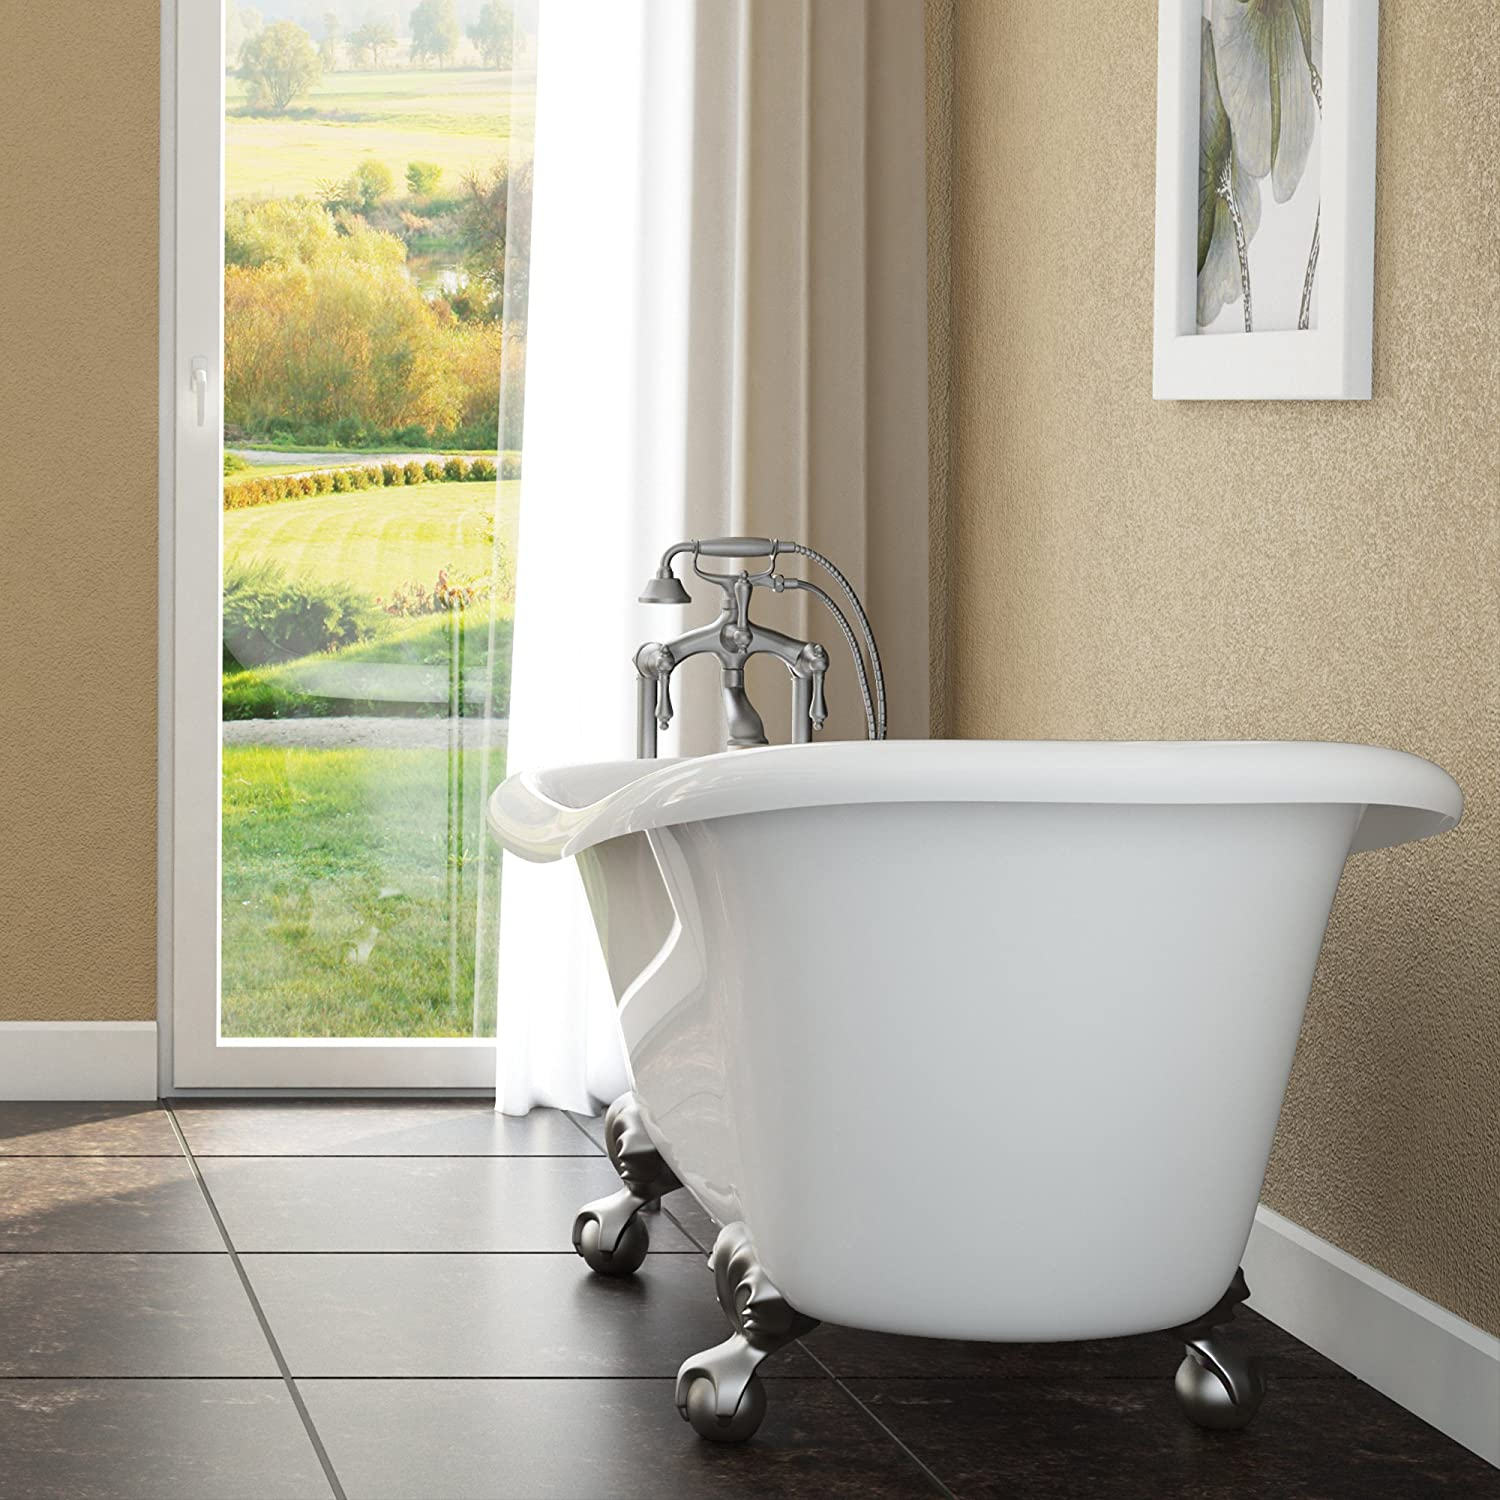 Luxury 60 inch Clawfoot Tub with Vintage Slipper Tub Design in White ...